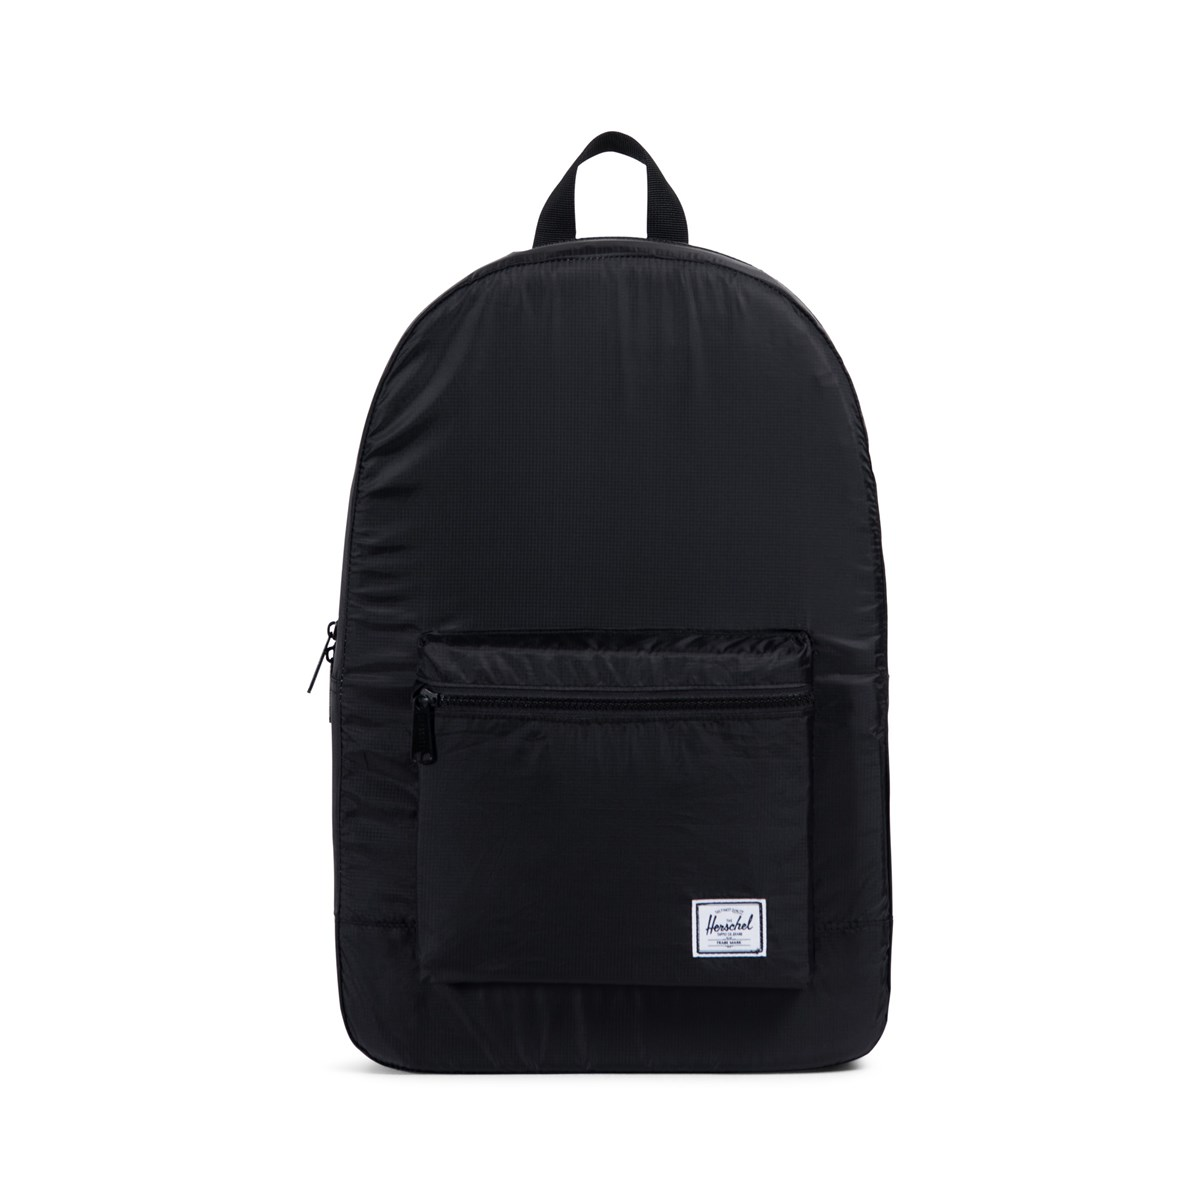 Daypack Backpack in Black